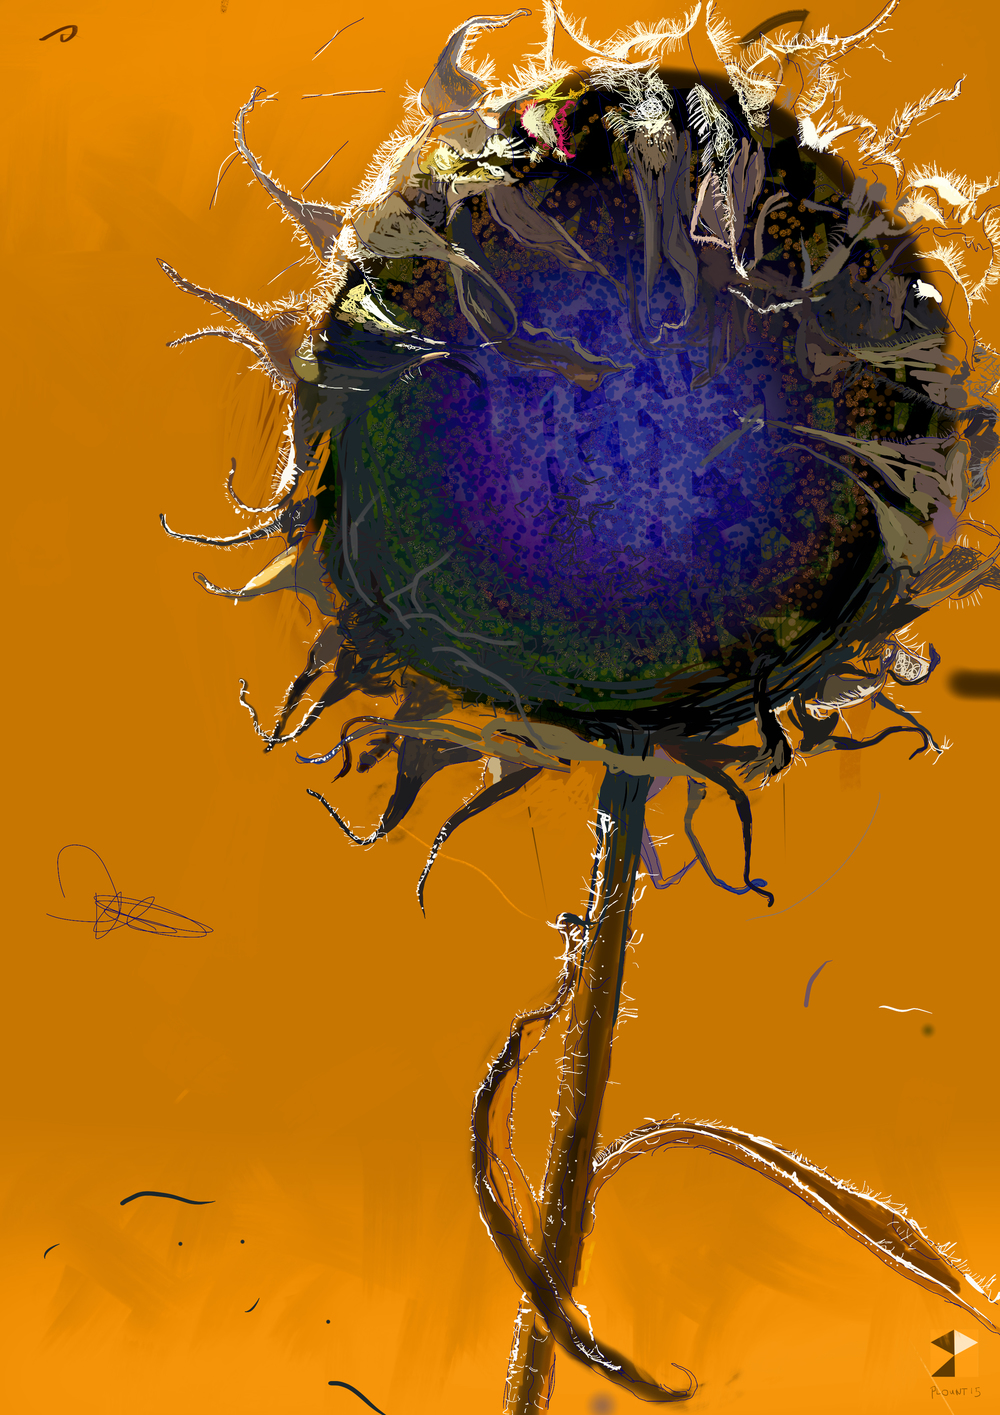 "Sunflower    Electronics Painting, iPad, Procreate, Pencil 53,  Photoshop. © 2016 dimensions variable to 48"" x 60""  giclee limited edition prints available contact the artist"